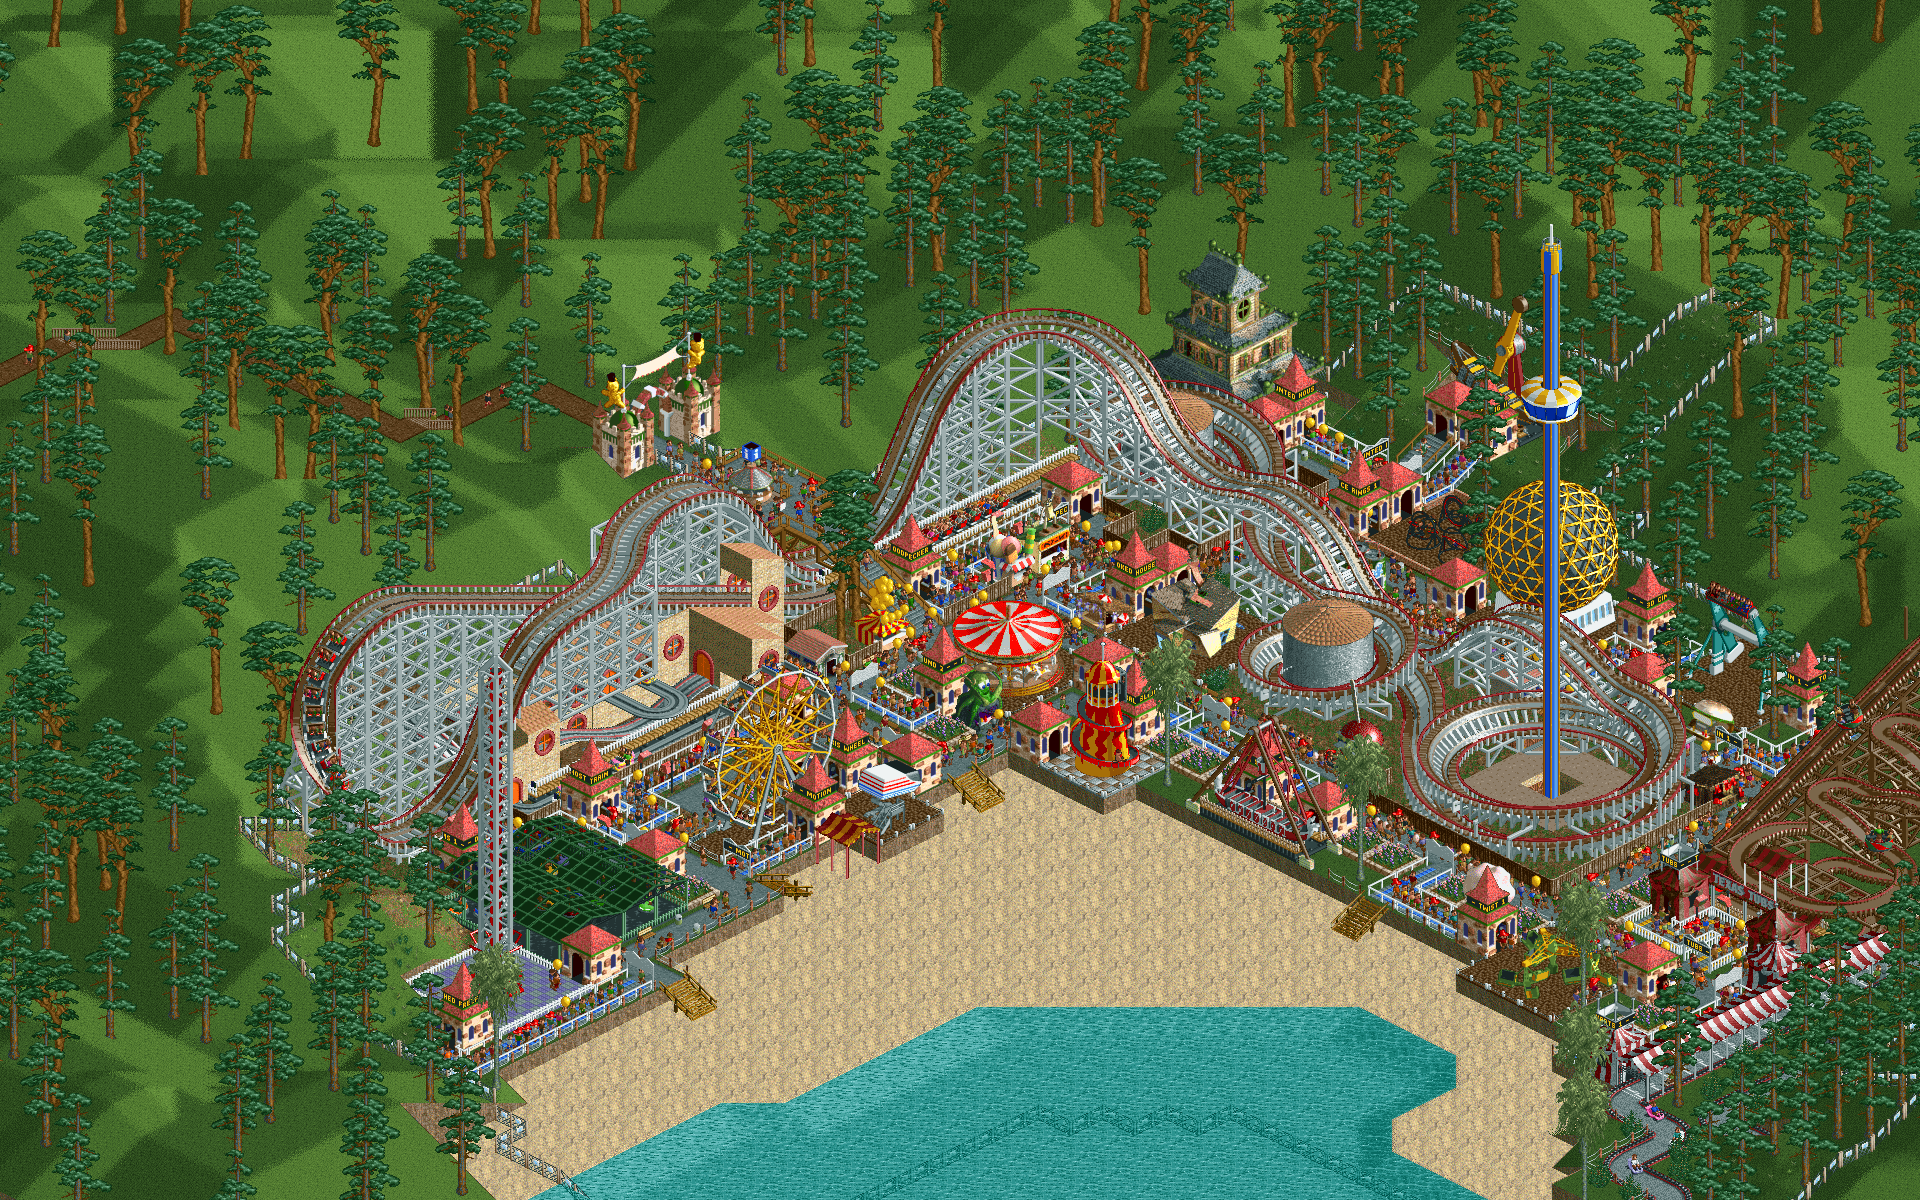 Roller Coaster Tycoon: Deterioration of a game series and